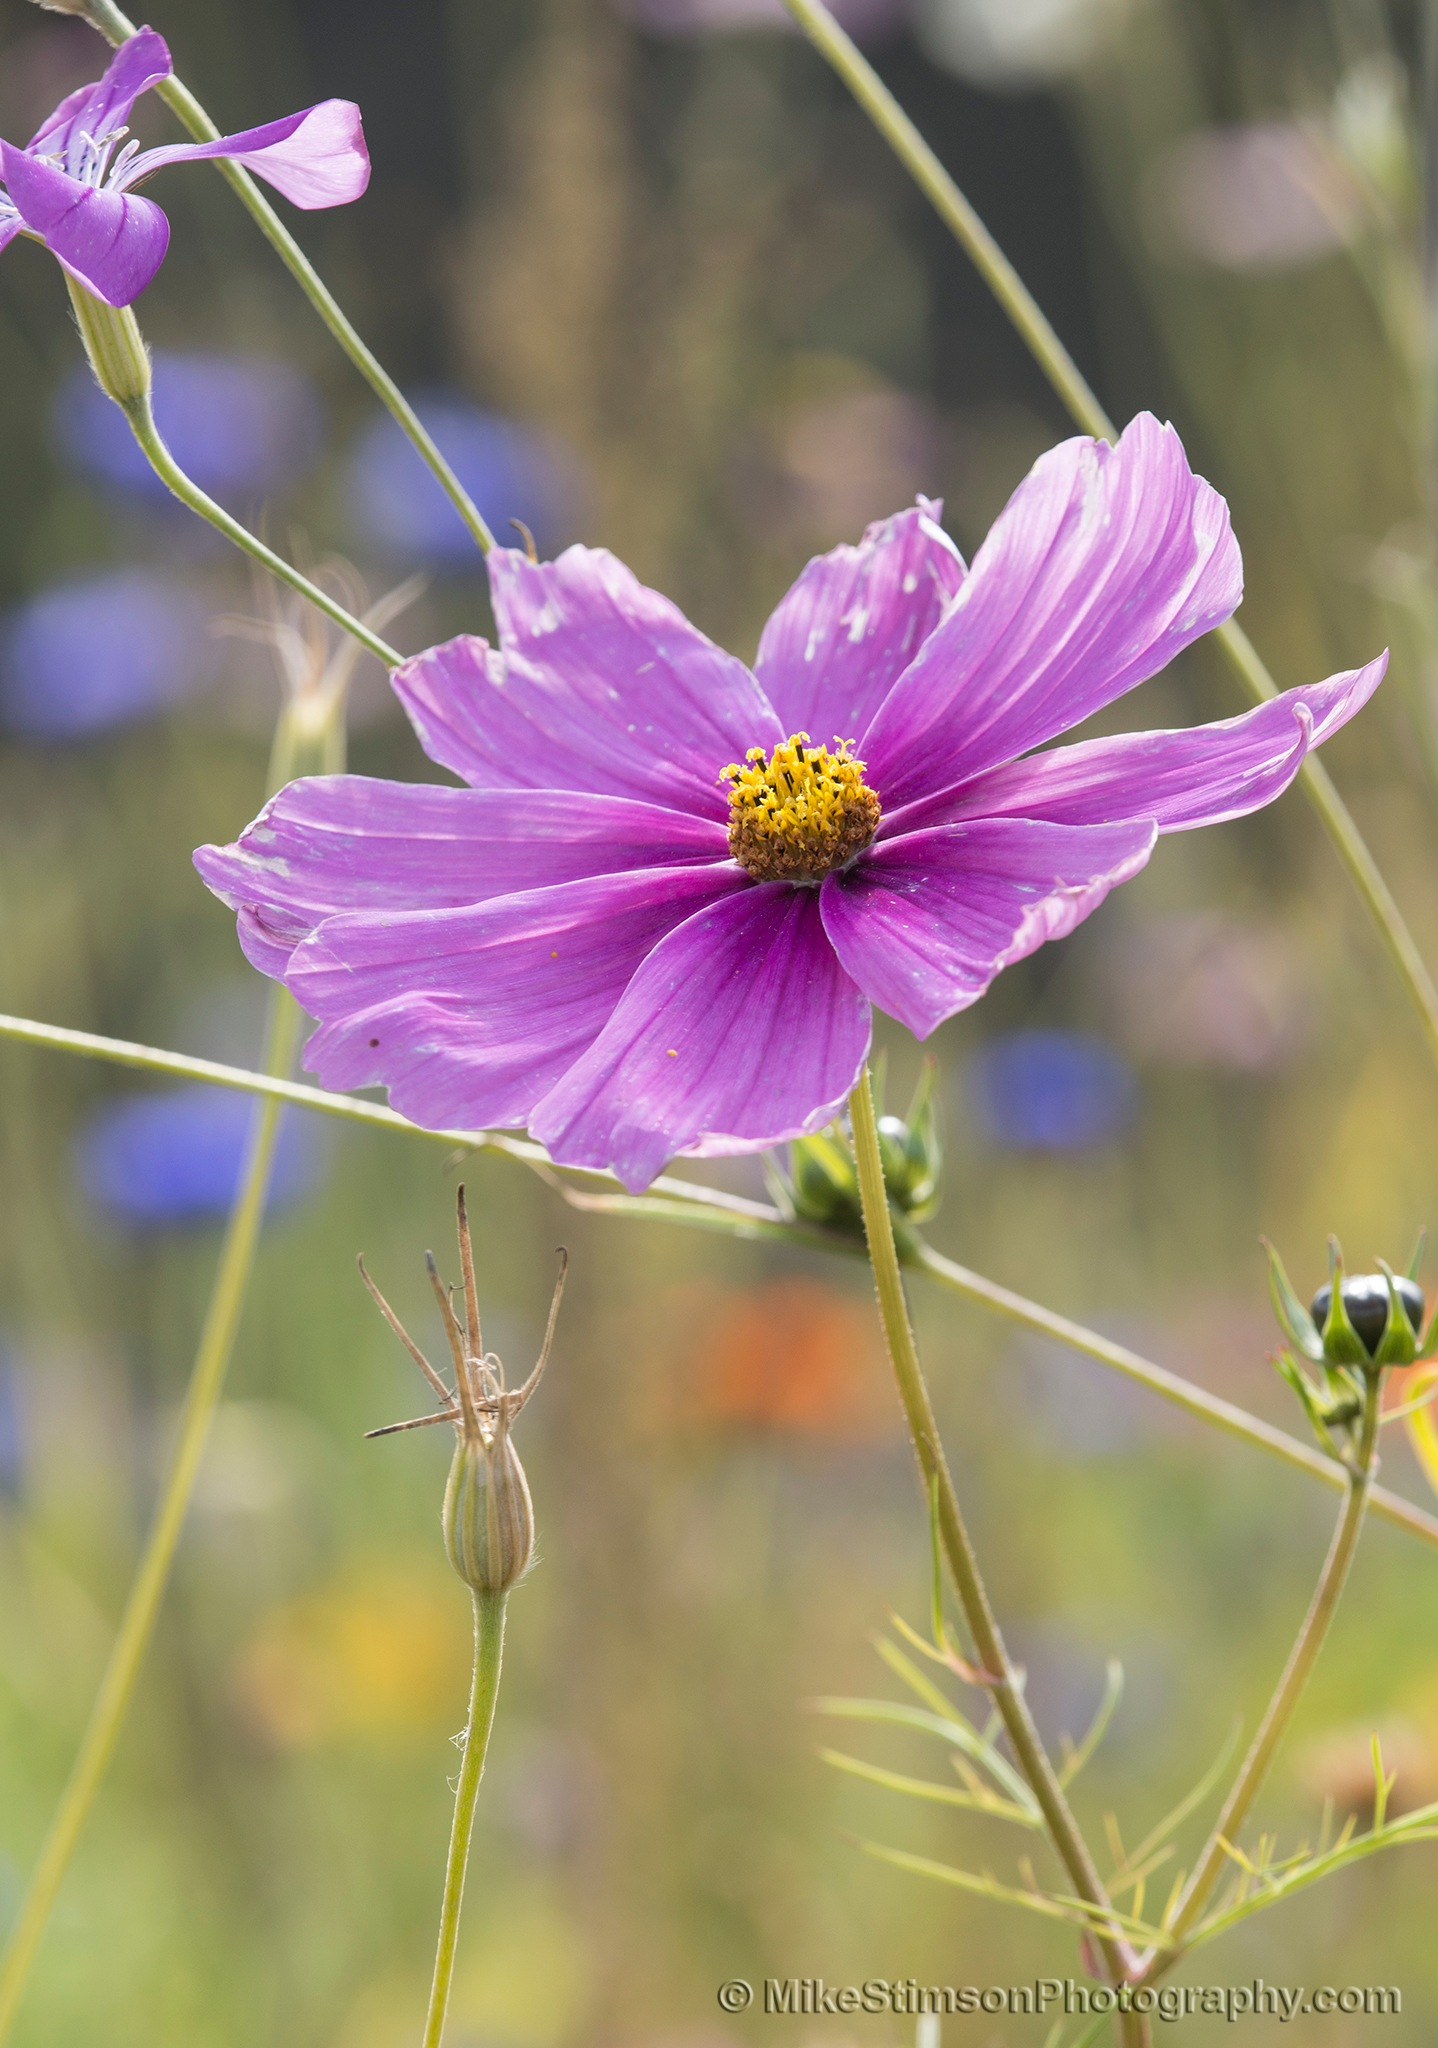 Mauve Cosmos flower by Mike Stimson